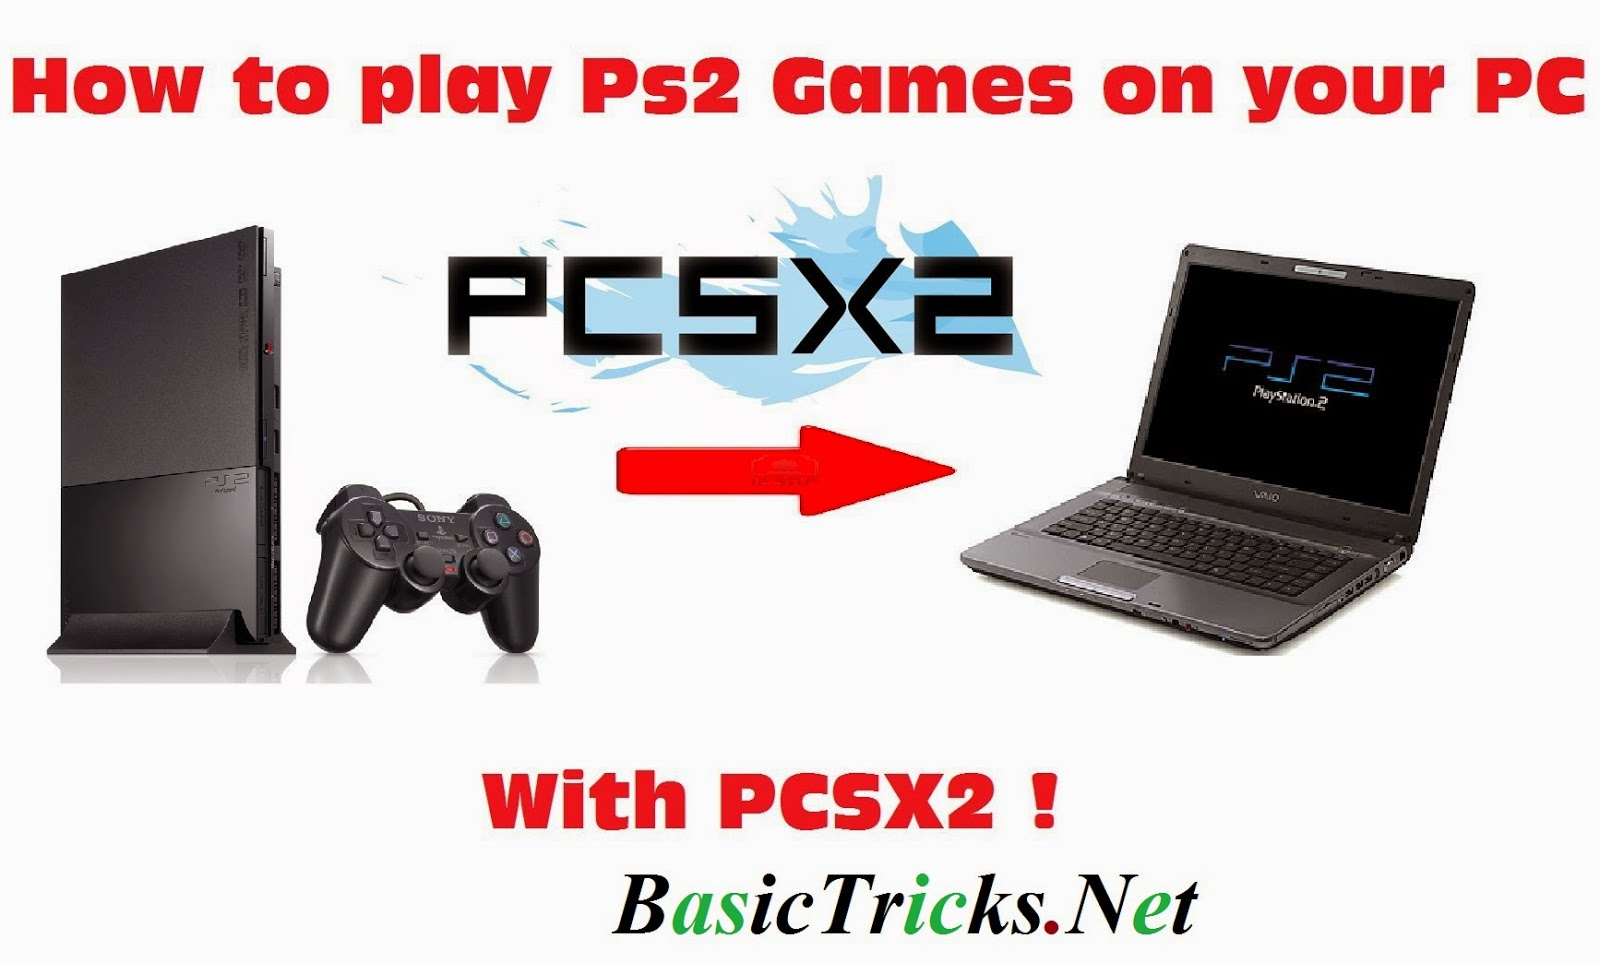 playstation 2 emulator for pc free download for windows 7